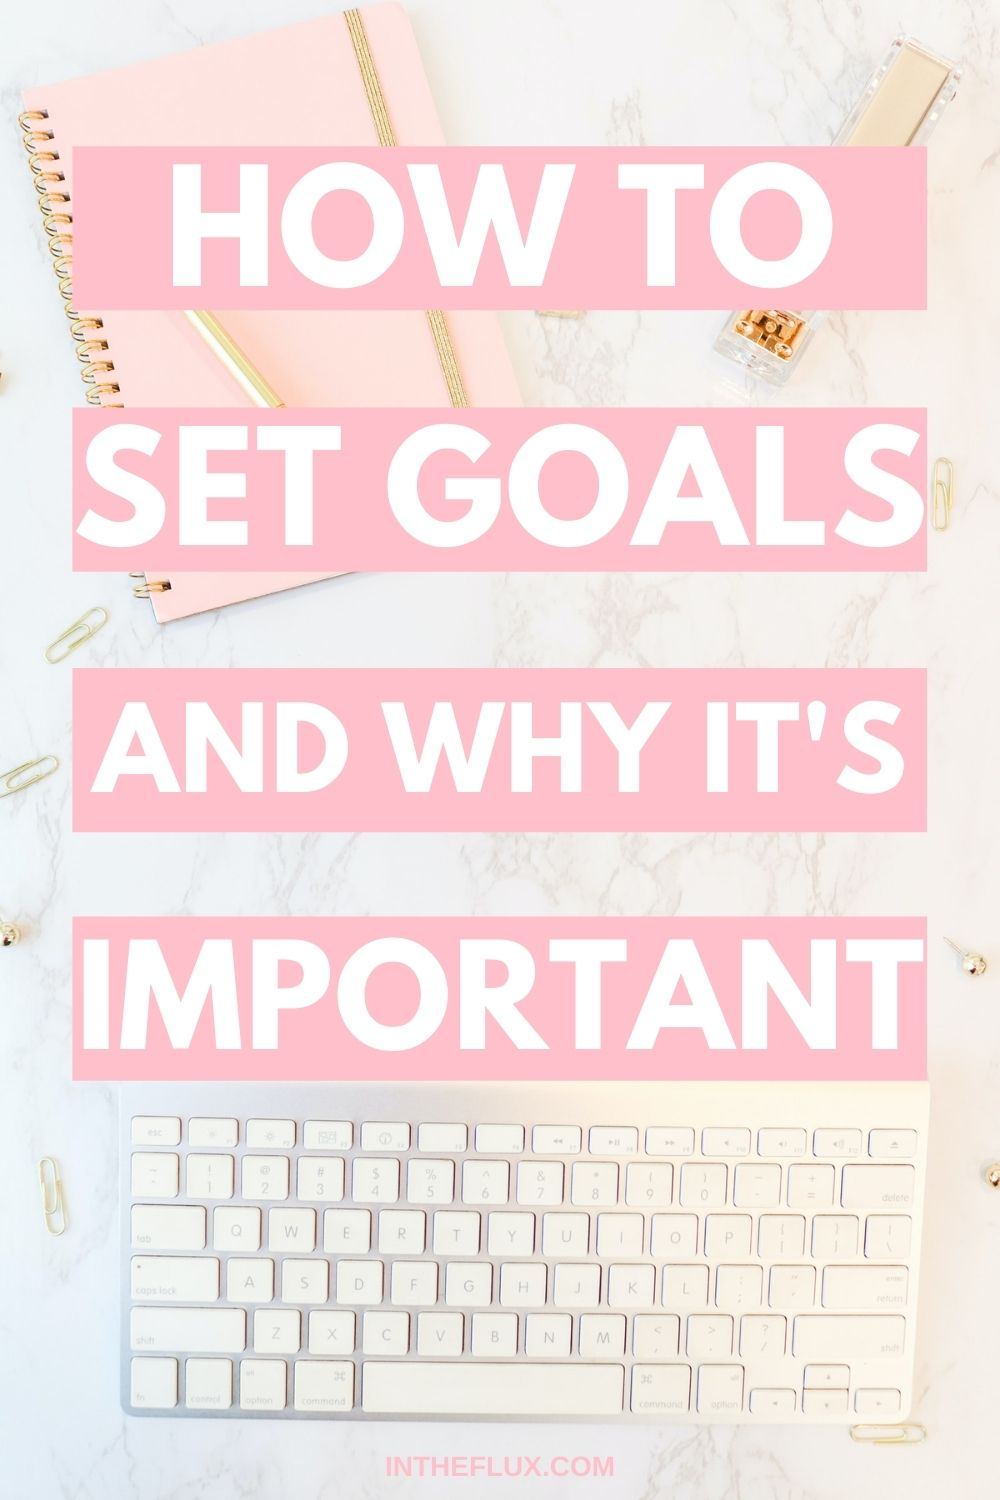 How to Set Goals (and Why It's Important) Pinterest pin